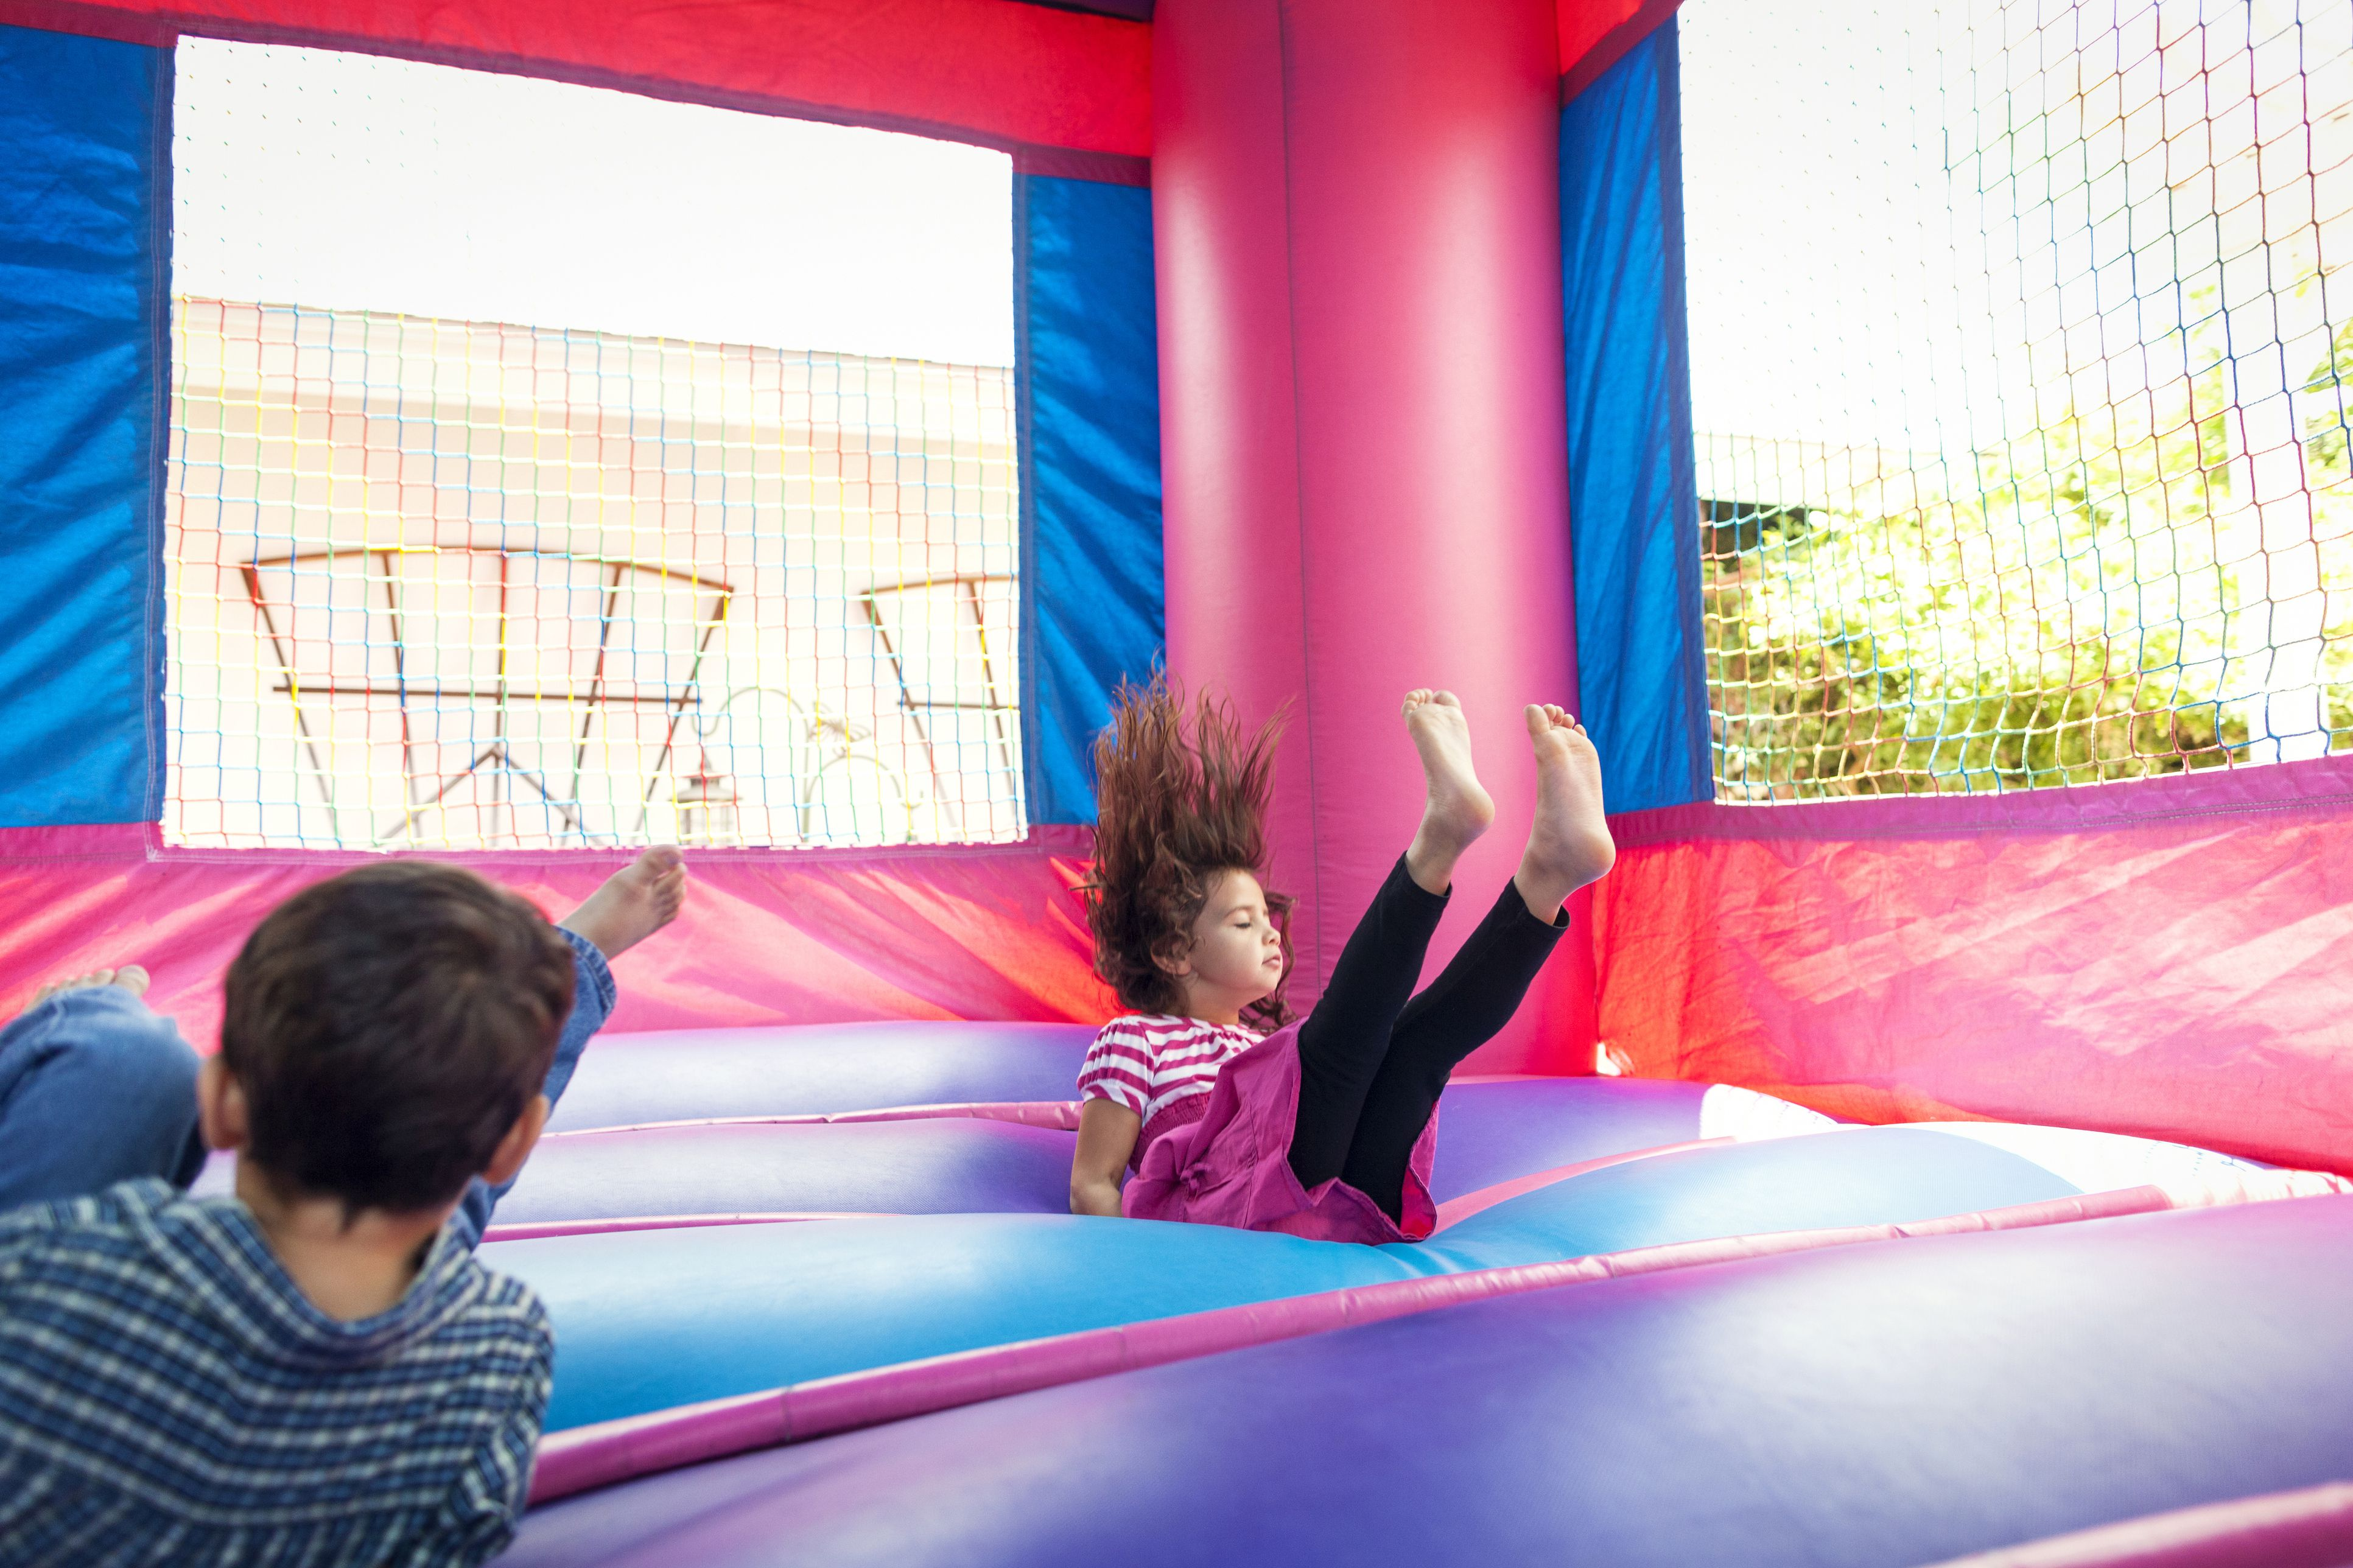 Non-Competitive Active Games for Kids' Parties